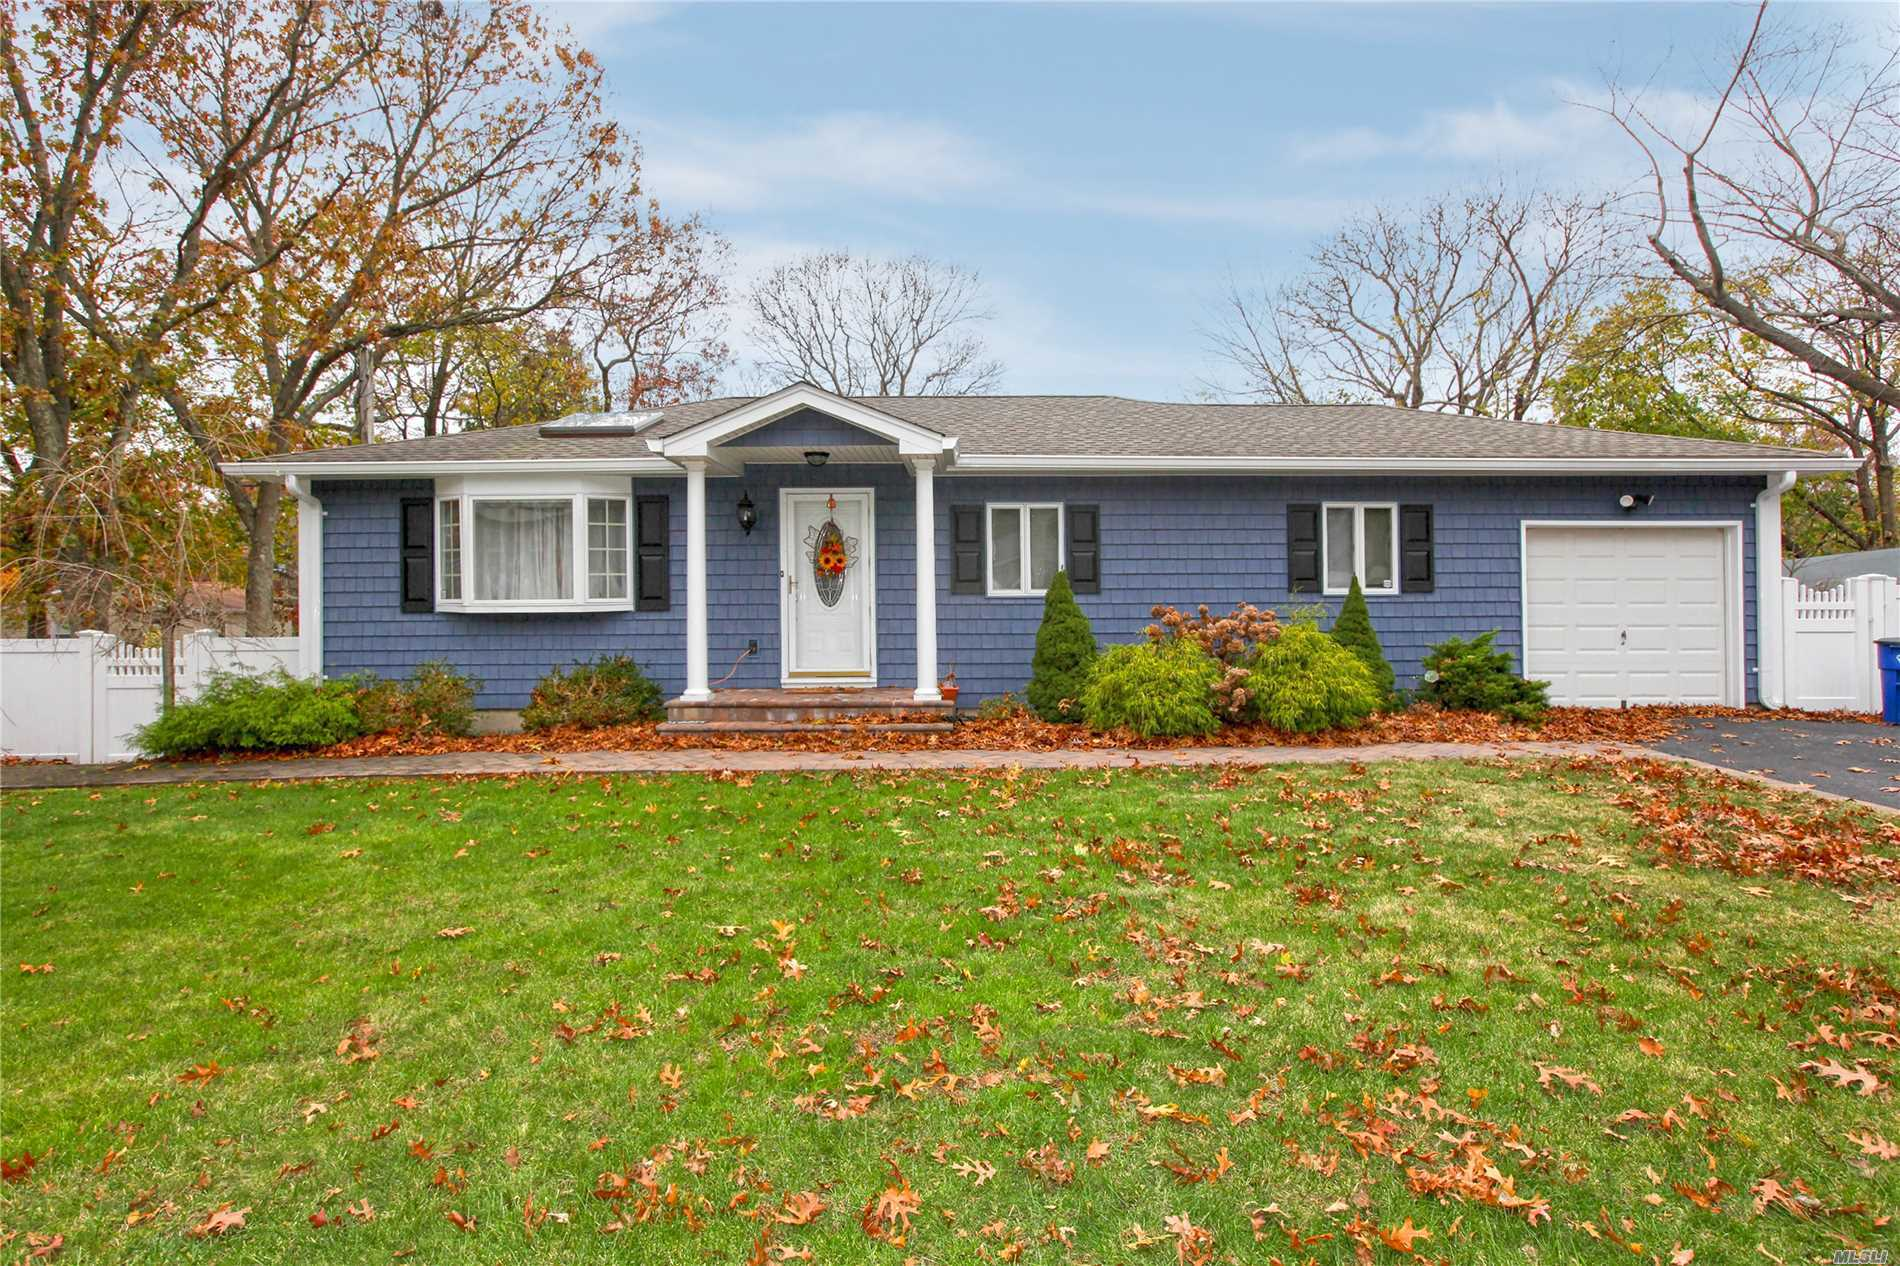 Great Ranch In The Village Of Lake Grove. Sachem Schools. Featuring 3 Bedrooms, 1.5 Baths, Updated Bath, Hardwood Floors, Young Roof, New Siding, Great Basement With Office And Den. Low Taxes. This Home Wont Last!!